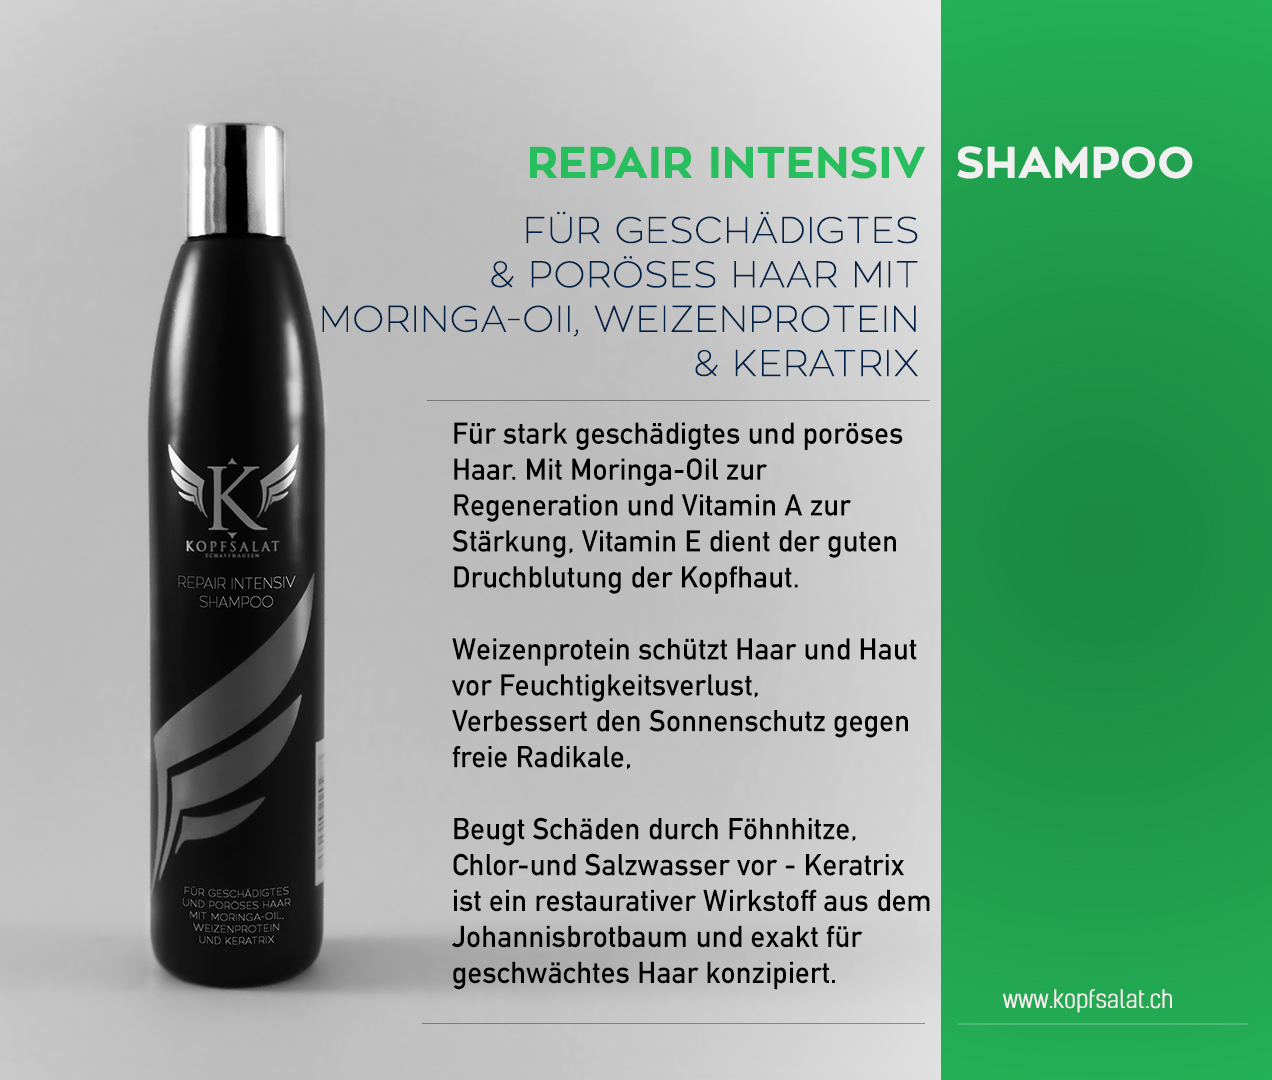 1 repair intensiv shampoo